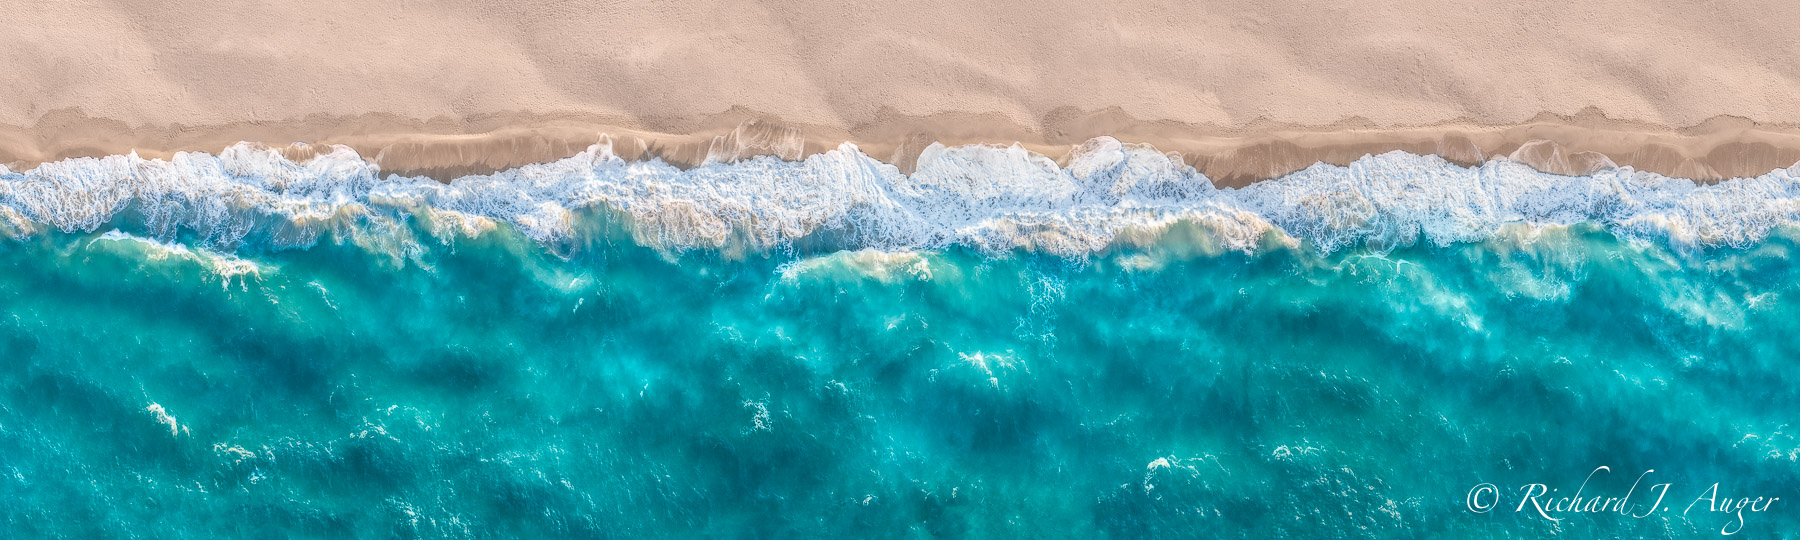 Juno Beach, Florida, Aerial, Drone, Waves, Panorama, Beach, Sand, Sunrise, Turquoise